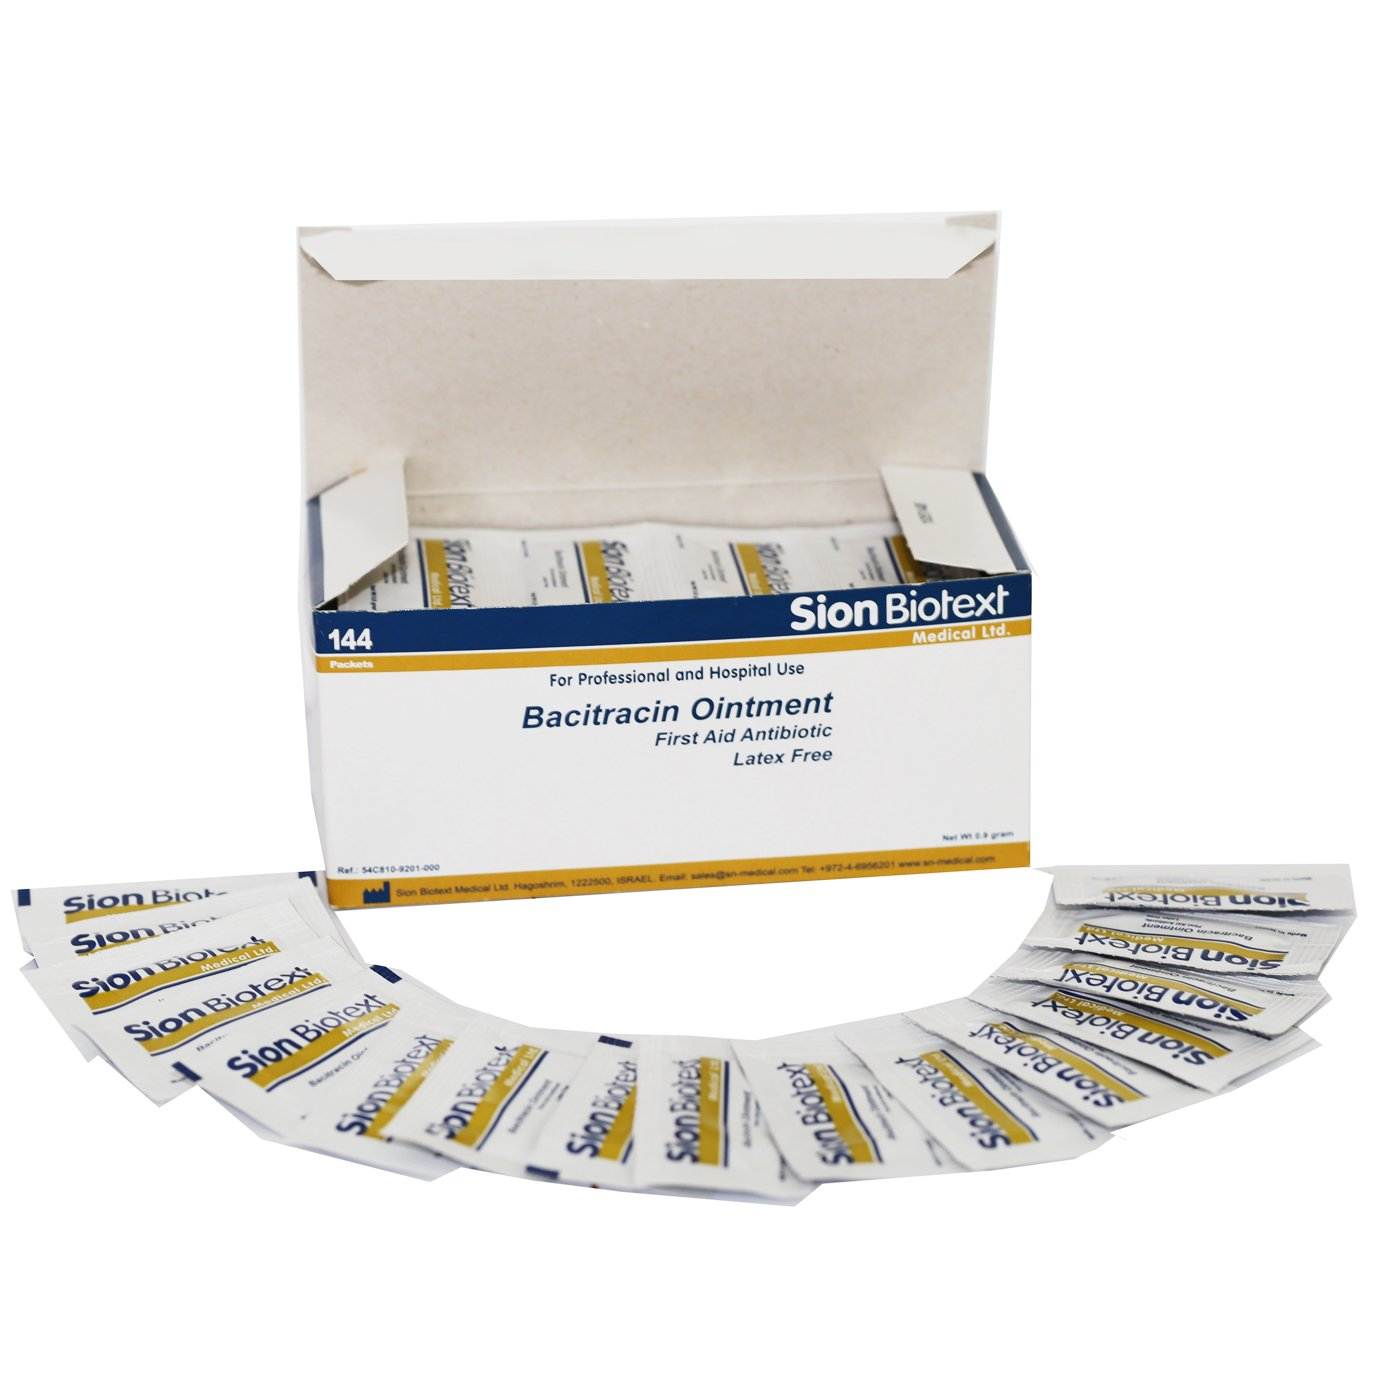 Bacitracin Ointment First Aid Antiseptic Antibiotic Cream by Sion Medical. Prevent Wound Infection, Aftercare Antibacterial, Skin Immediate Pain Relief. 144 Individual Packets to go 0.031 oz (0.9g) by Sion Biotext (Image #3)